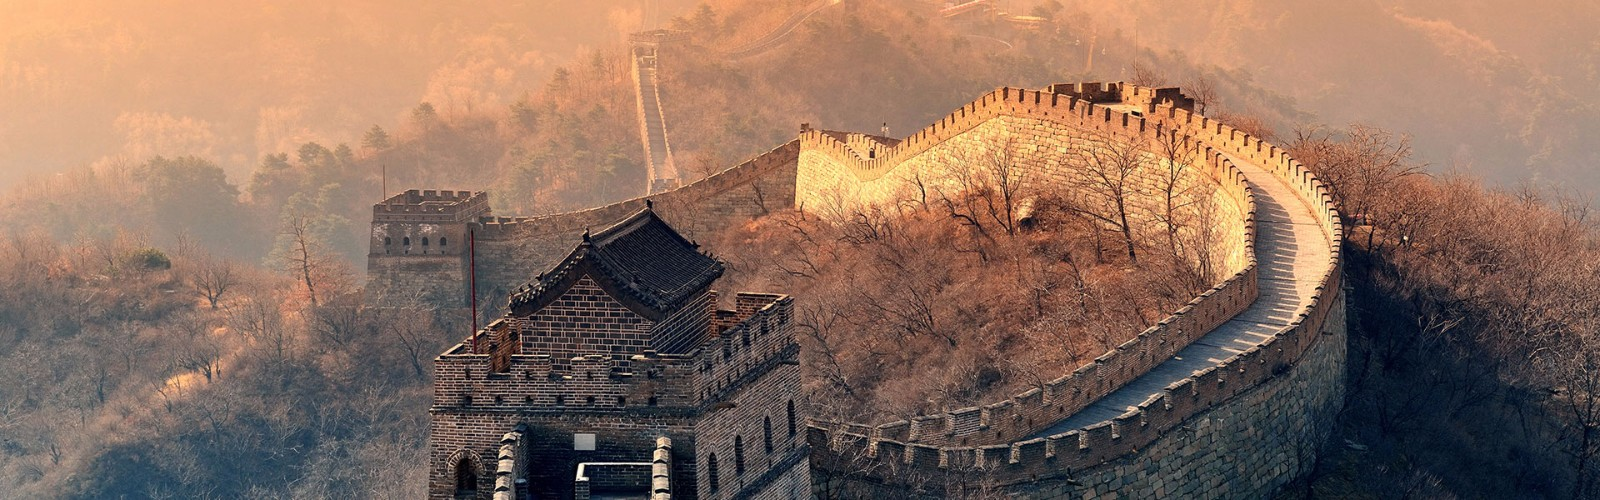 Exquisite China Tour | Wendy Wu Tours